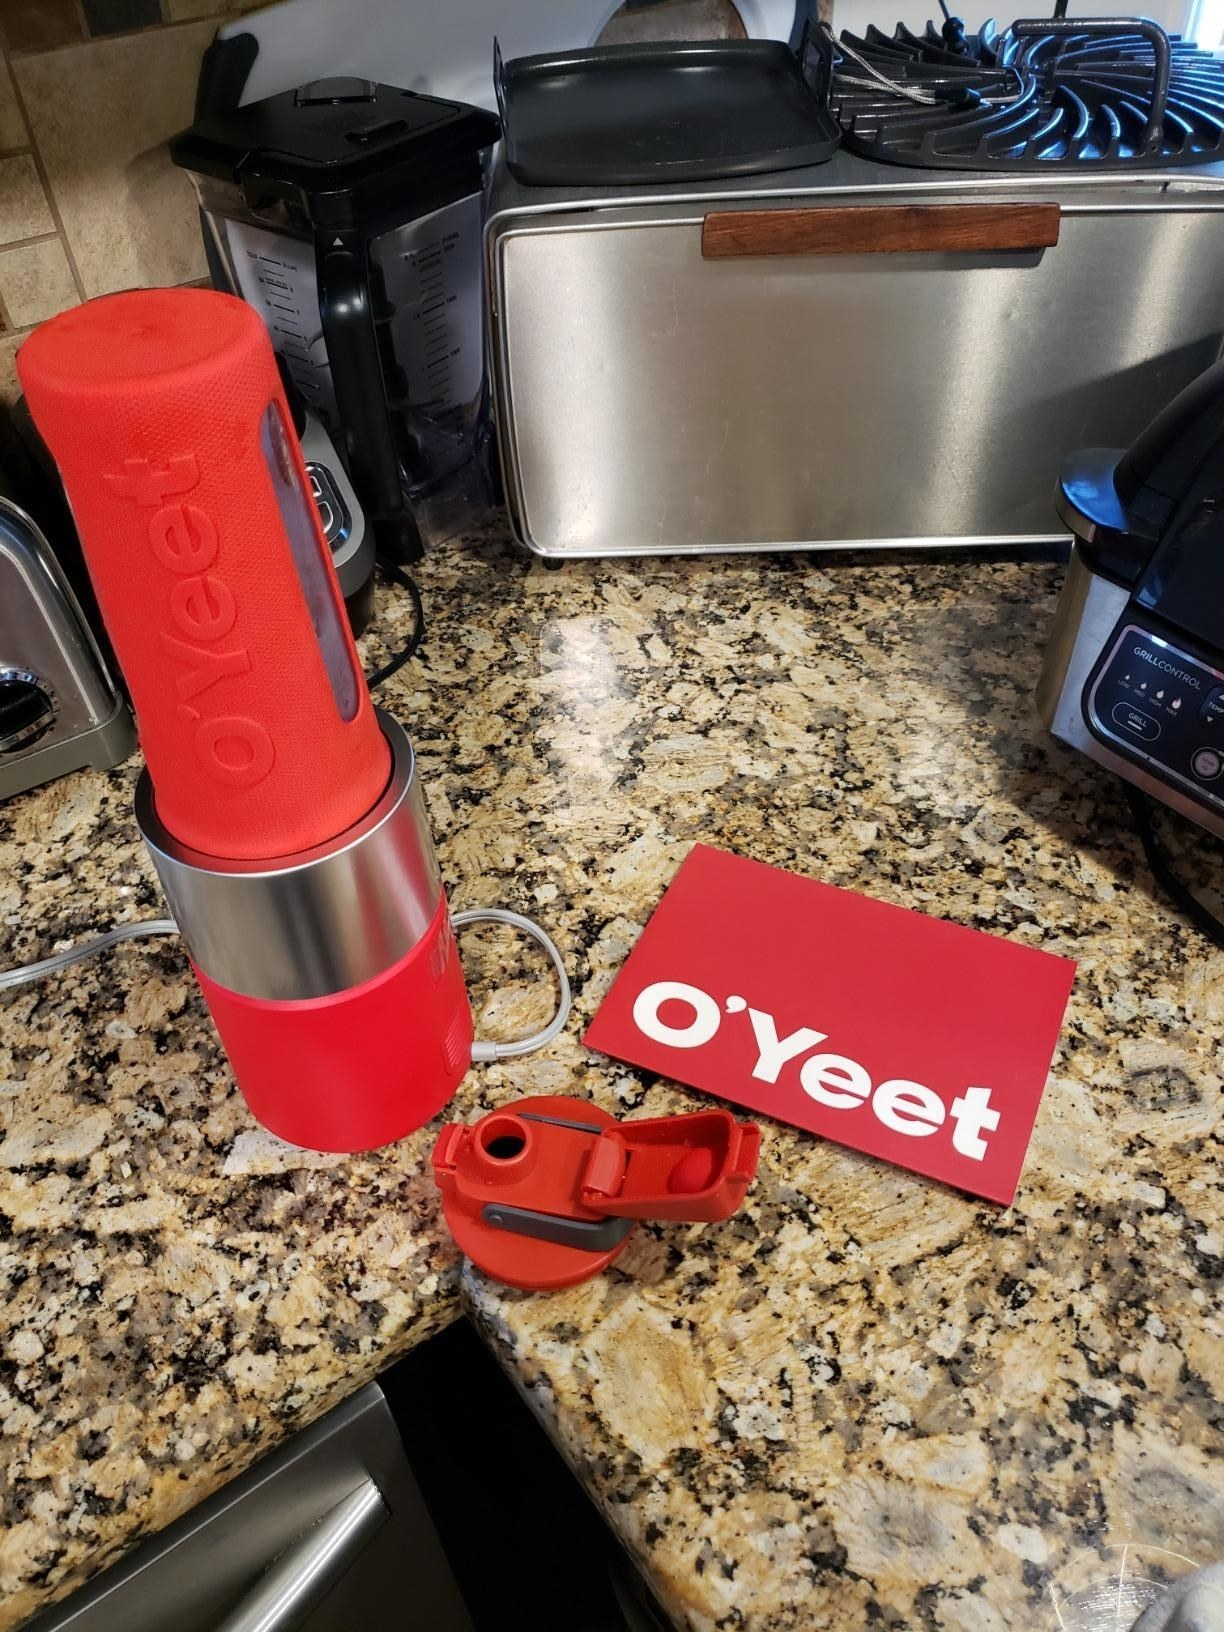 reviewer image of the o'yeet personal blender on a kitchen counter